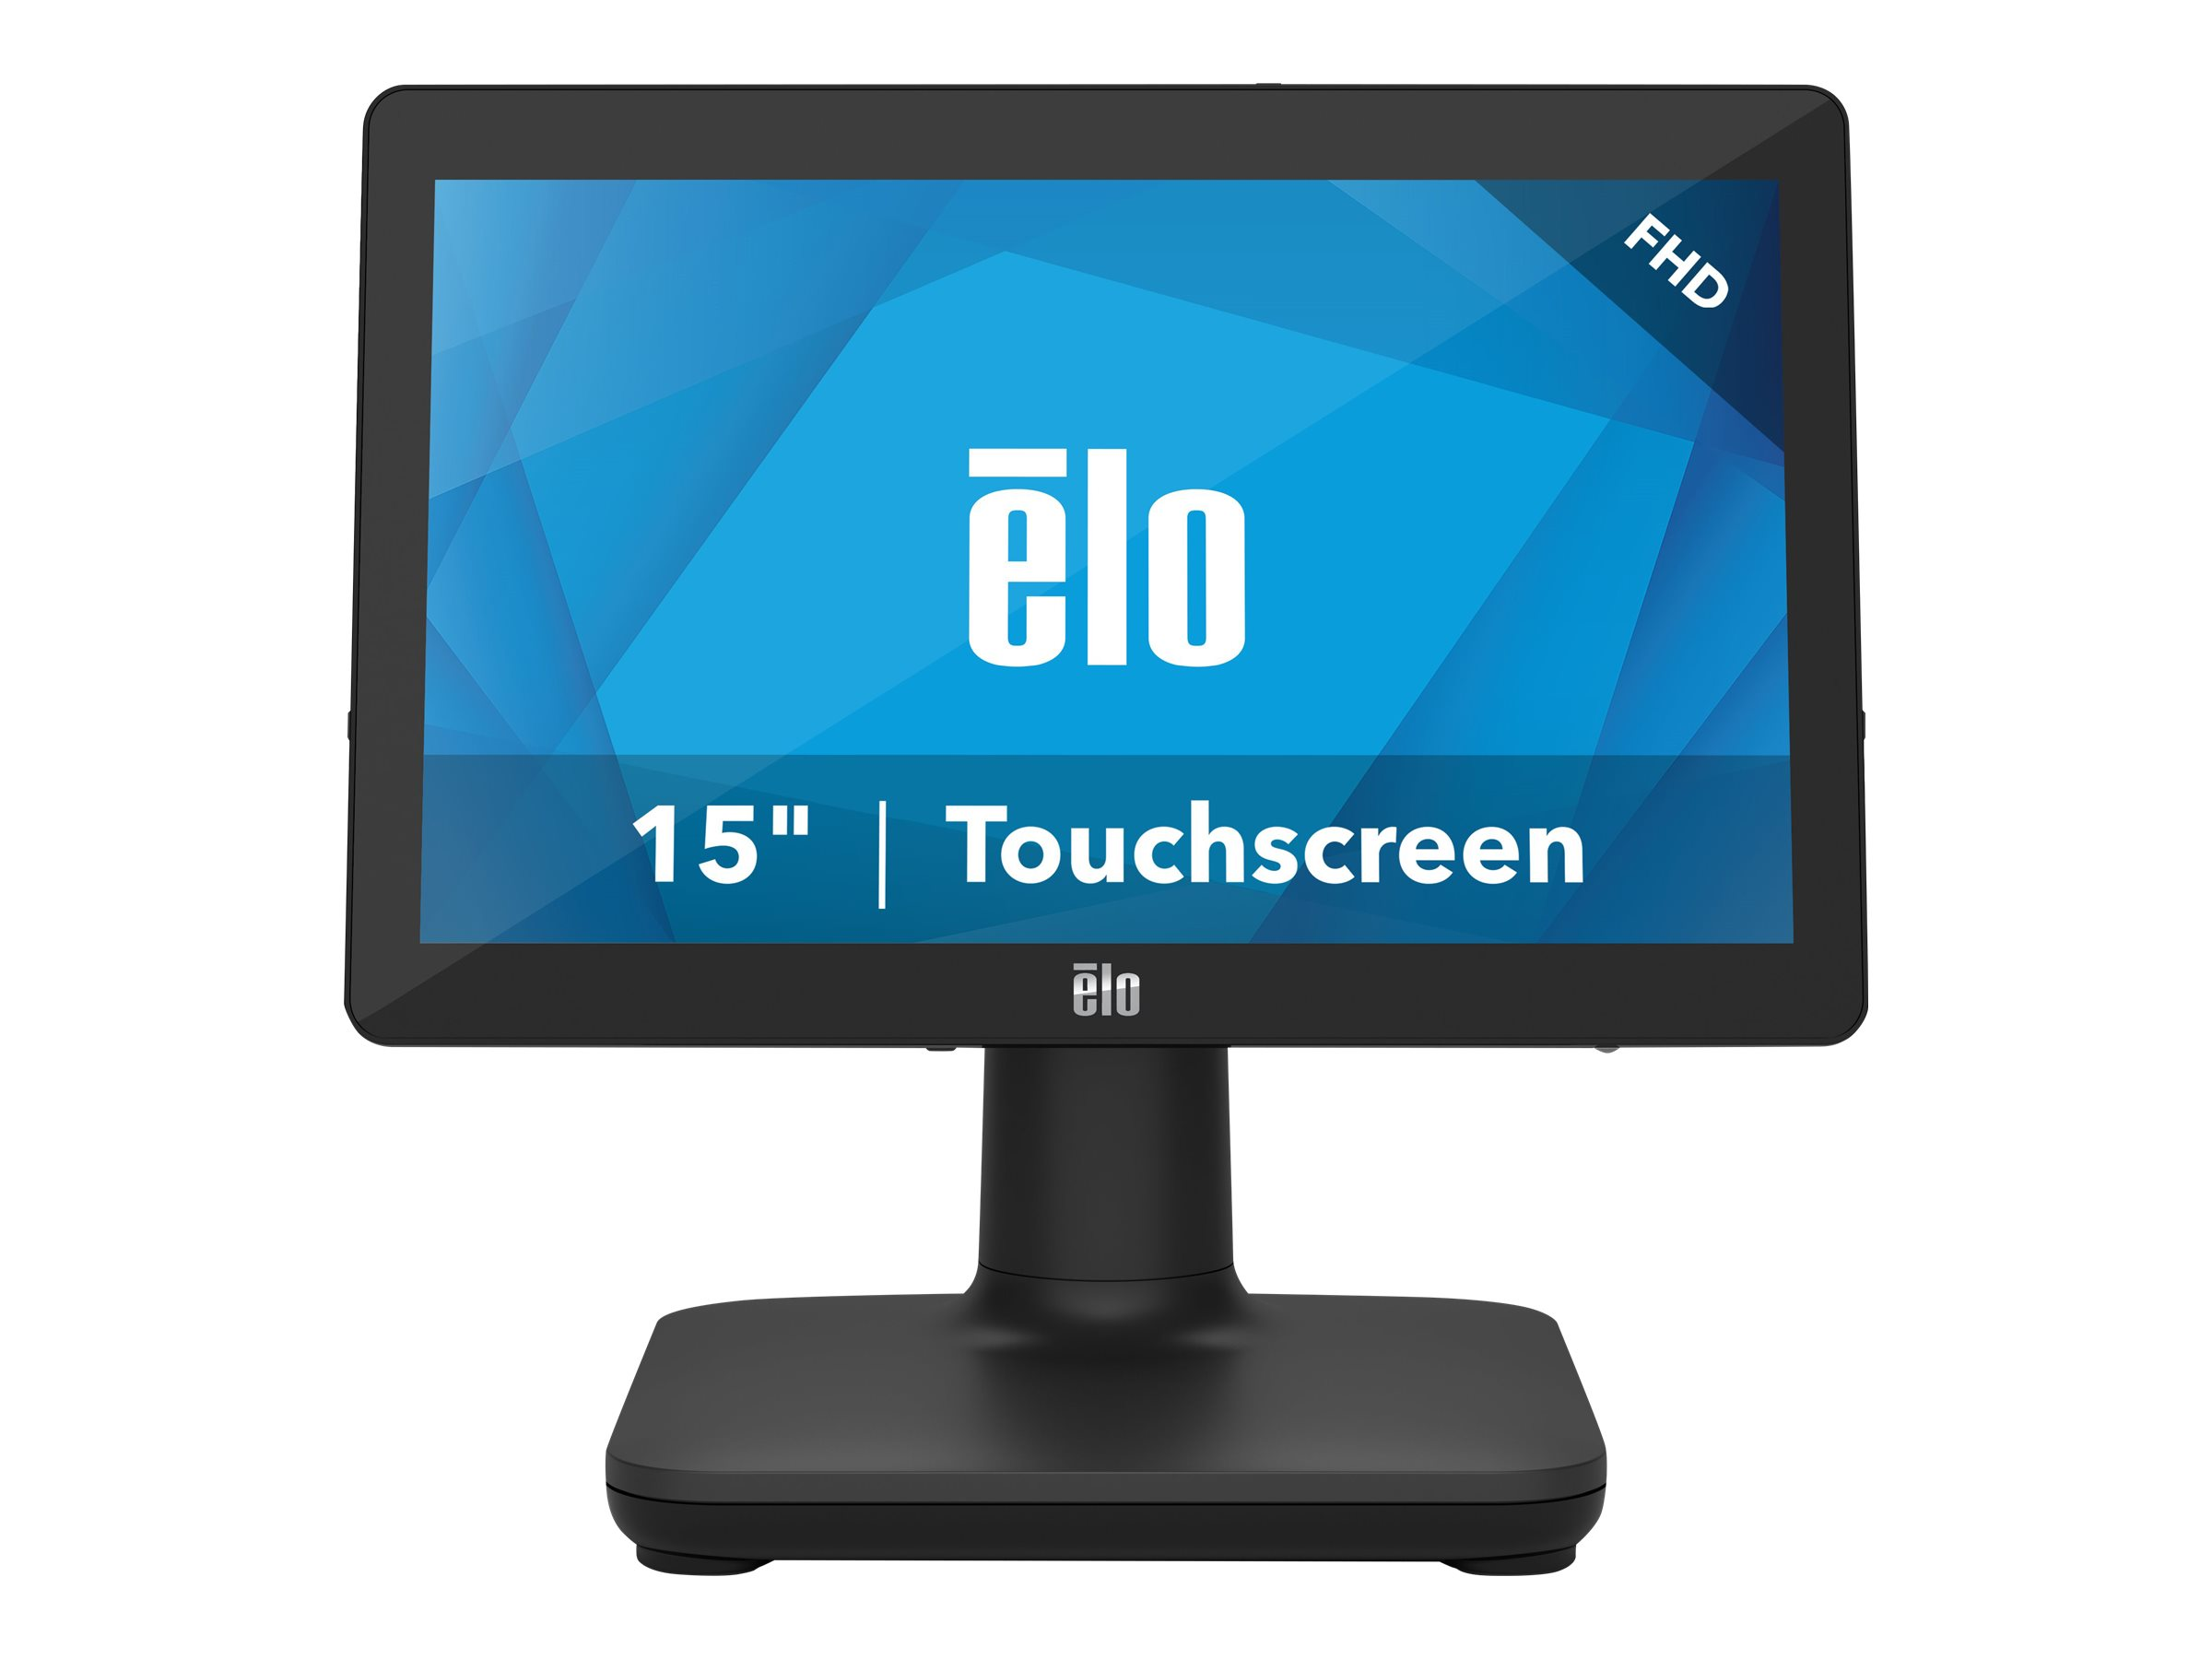 EloPOS System - with I/O Hub Stand - all-in-one - Core i5 8500T 2.1 GHz - 16 GB - SSD 256 GB - LED 15.6